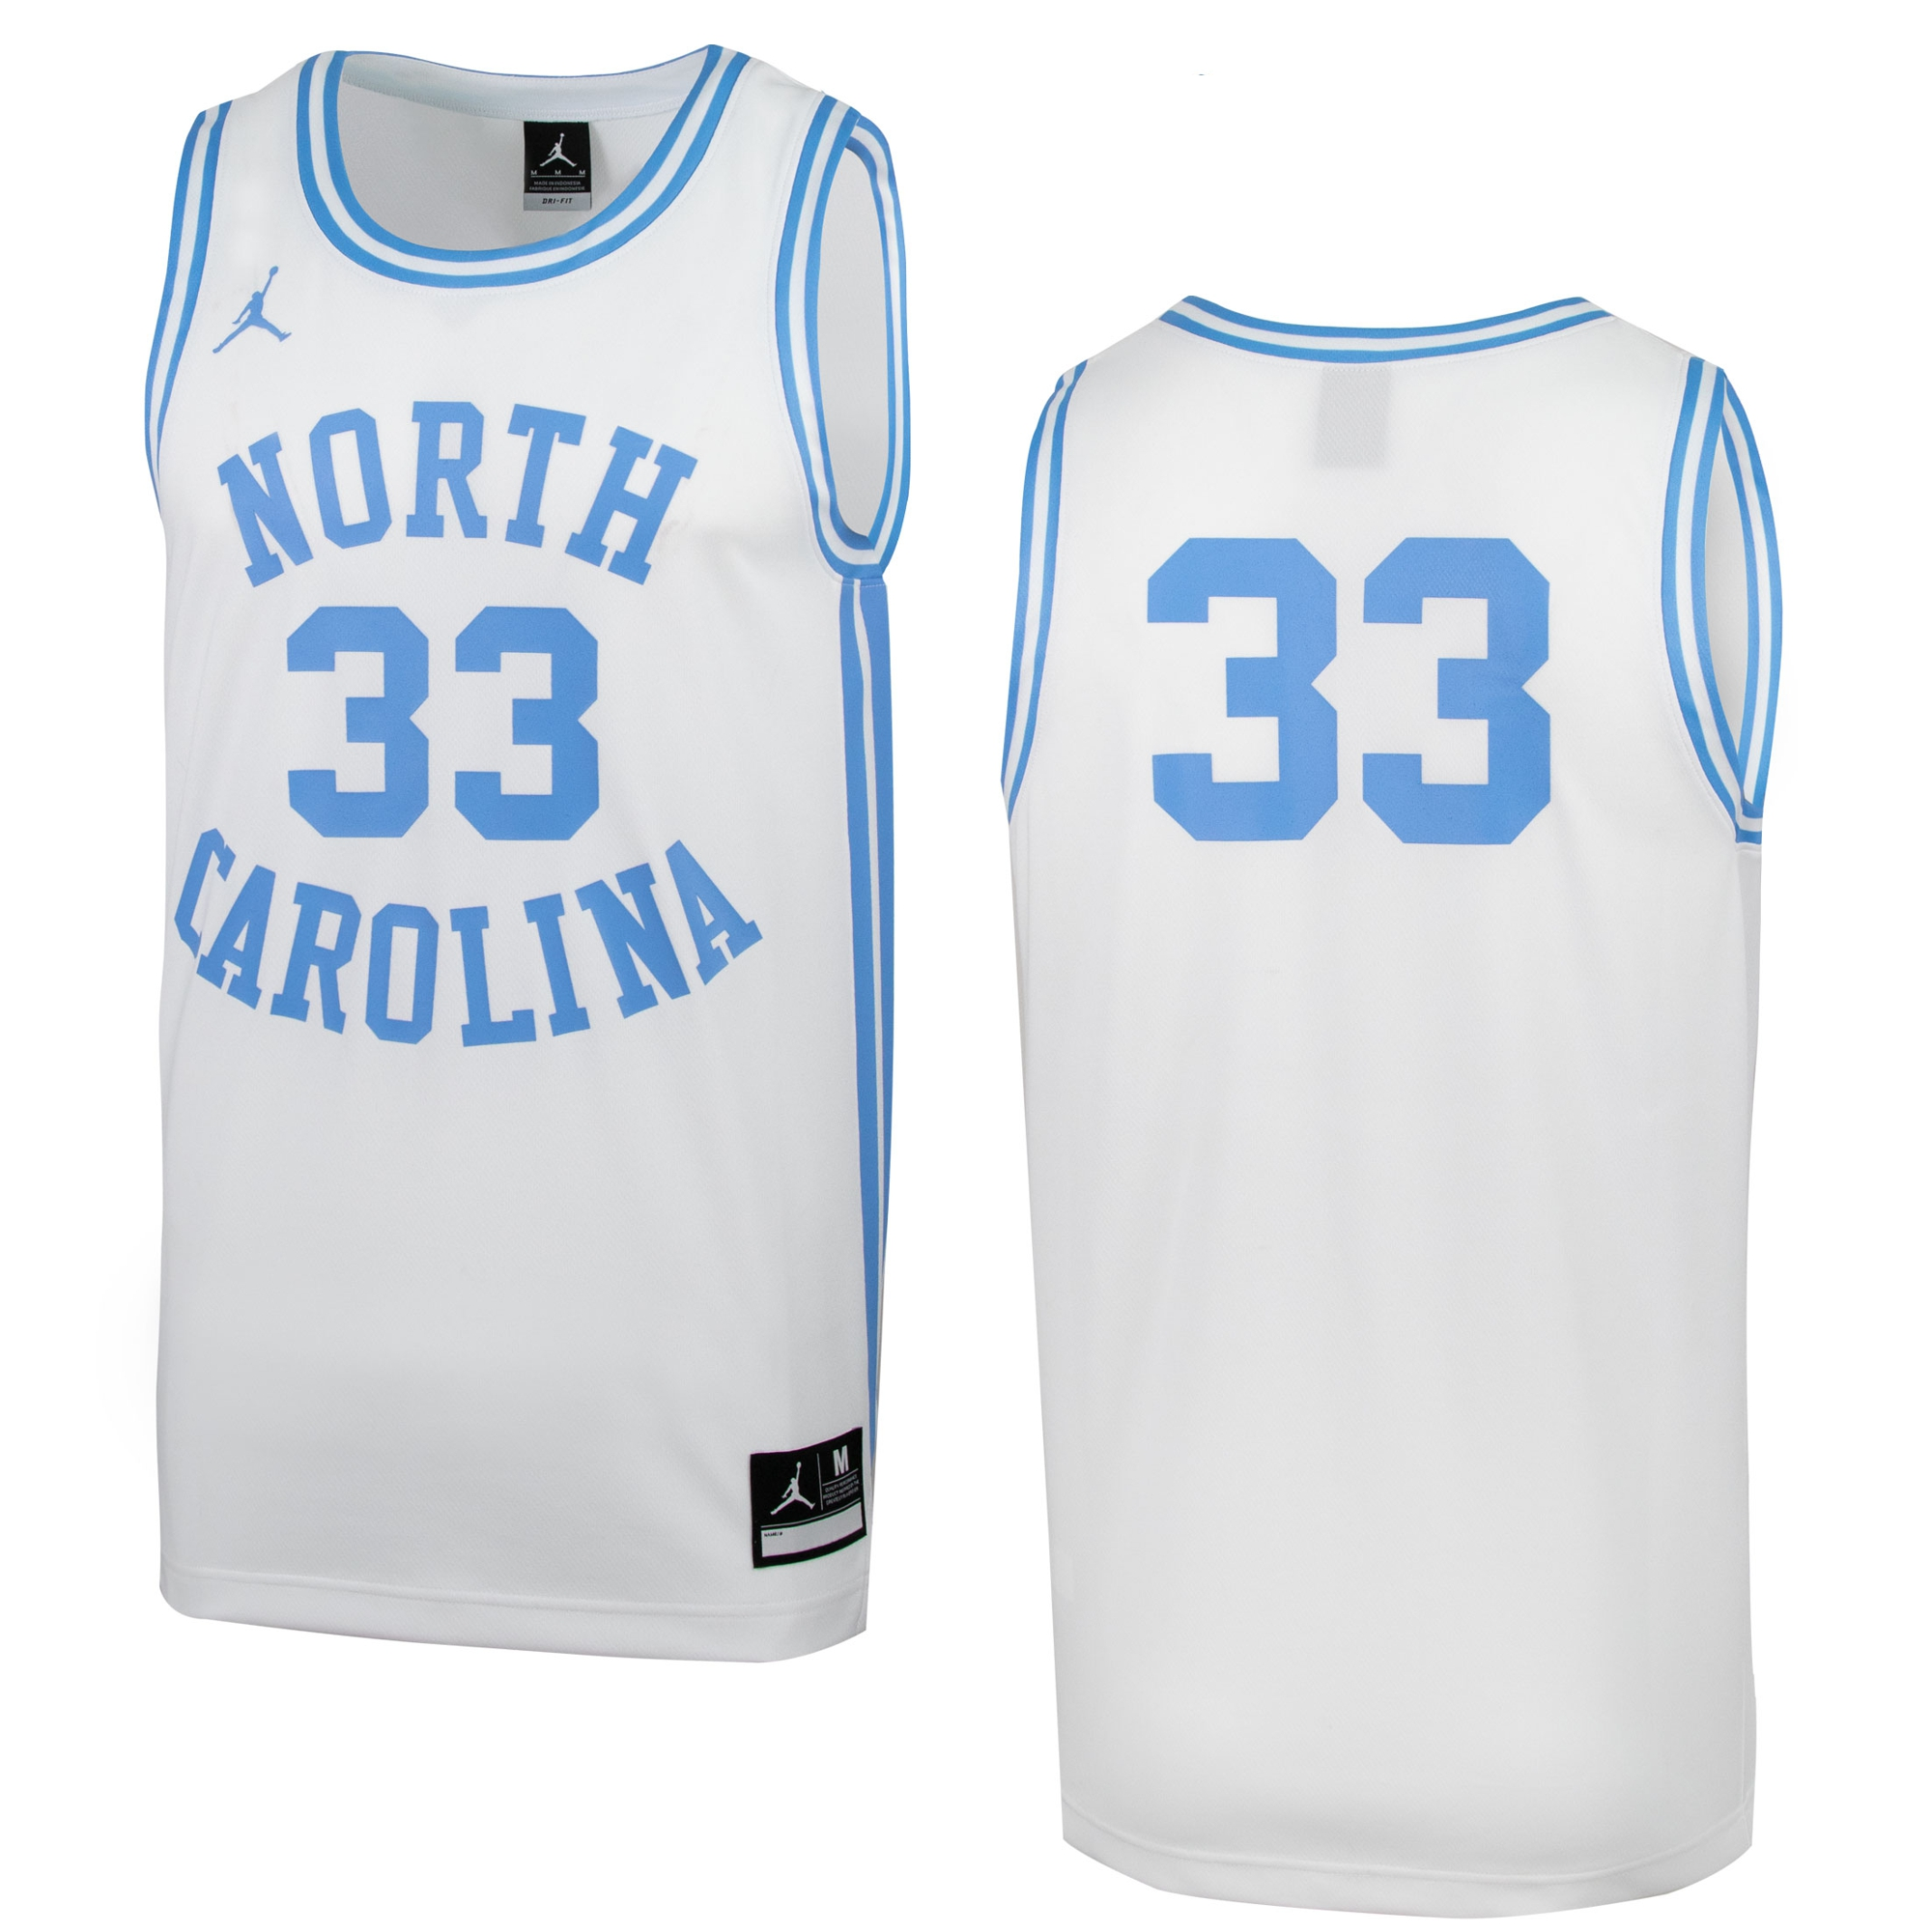 39b3f70cdf45 Johnny T-shirt - North Carolina Tar Heels - Nike  33 Retro Basketball Jersey  (White) by Nike